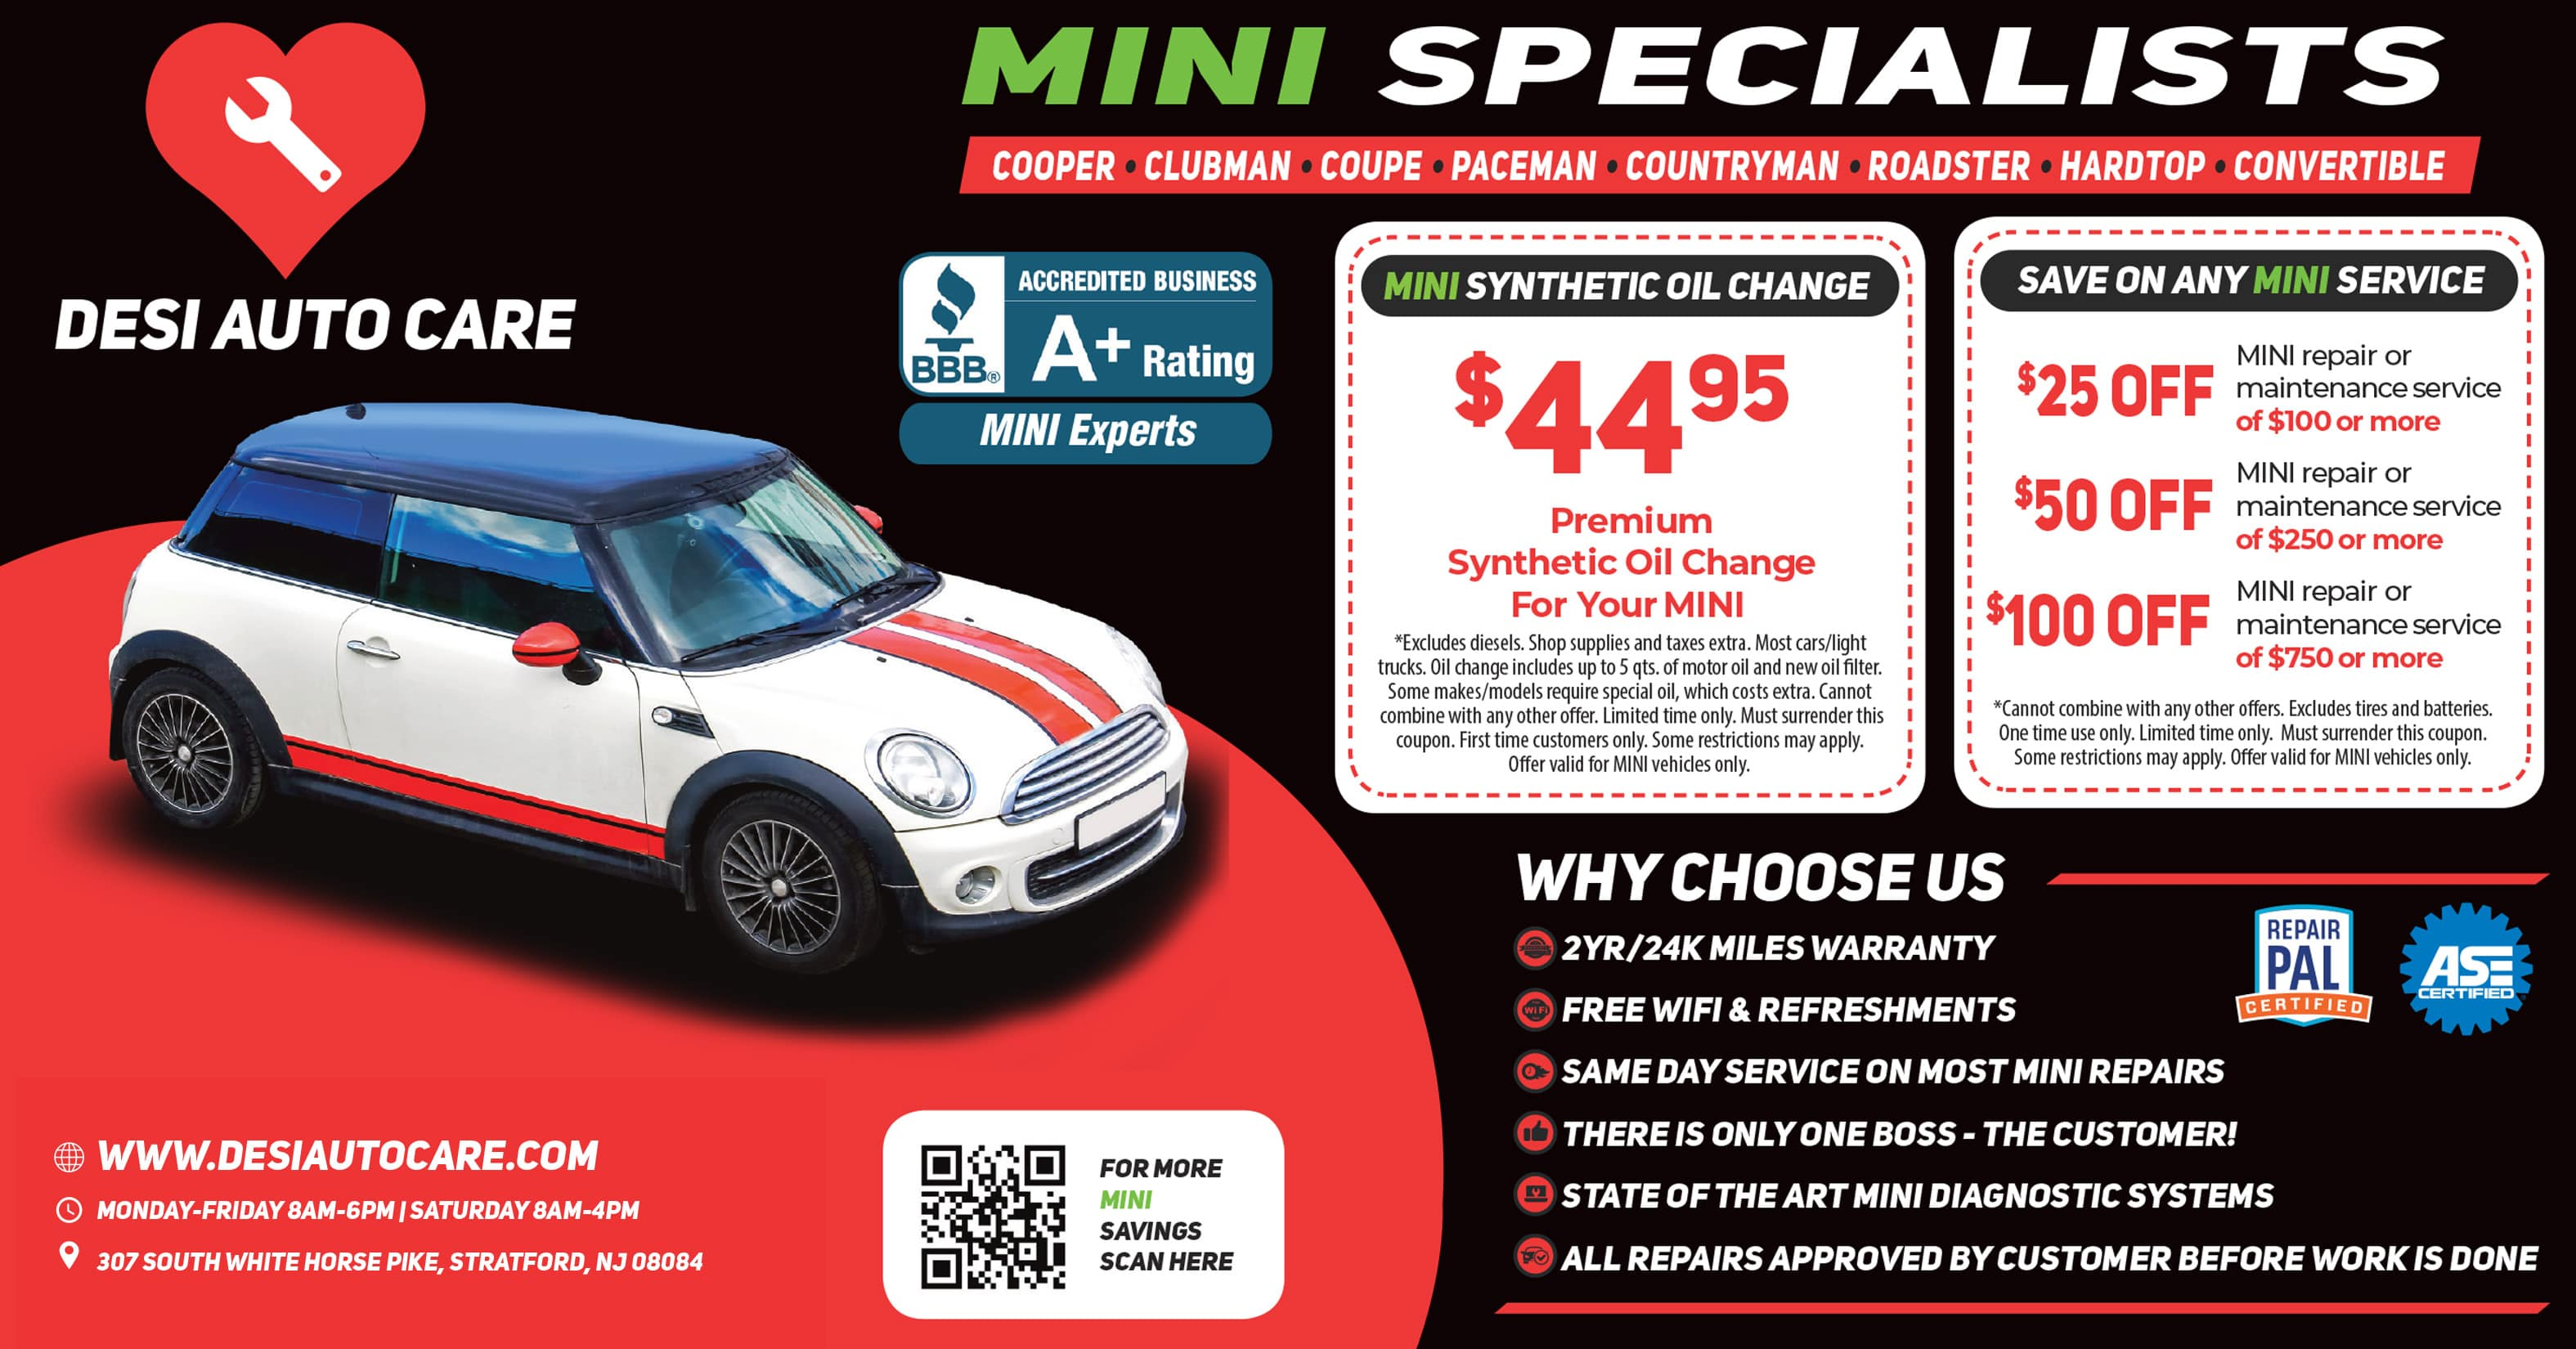 MINI Services 2 | Desi Auto Care